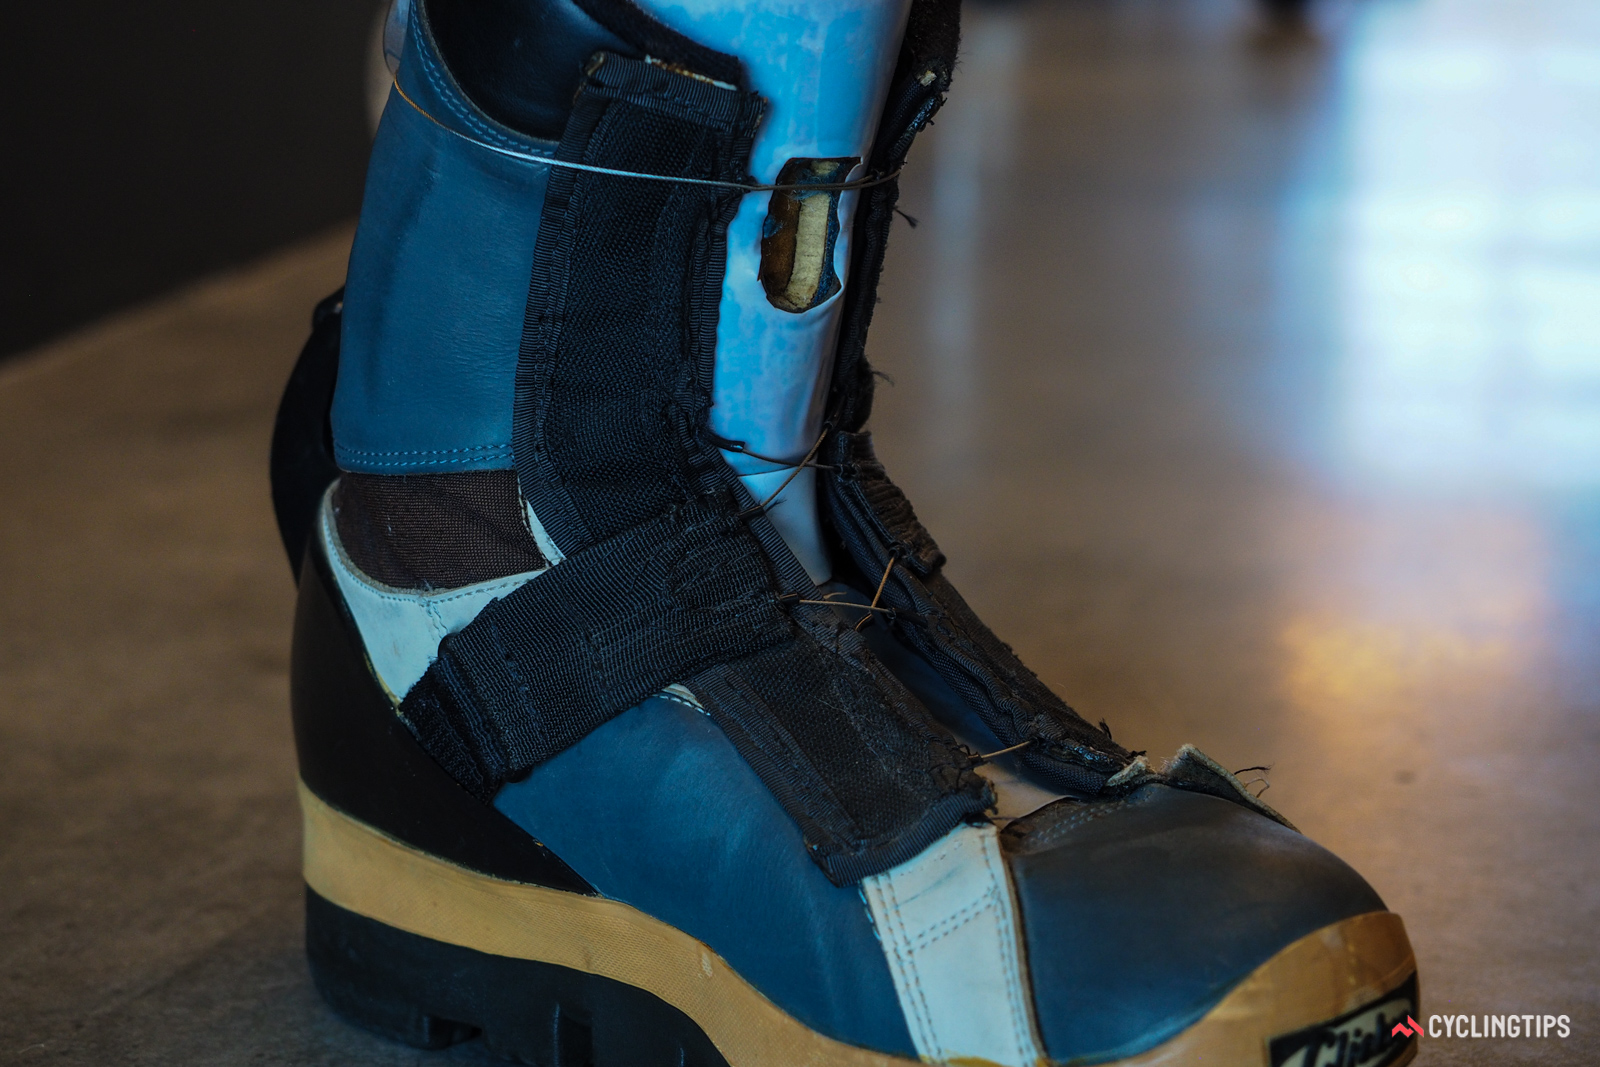 Company founder Gary Hammerslag retrofitted a pair of K2 Clicker boots to test his then-prototype Boa cable system. It wasn't pretty, but it worked.